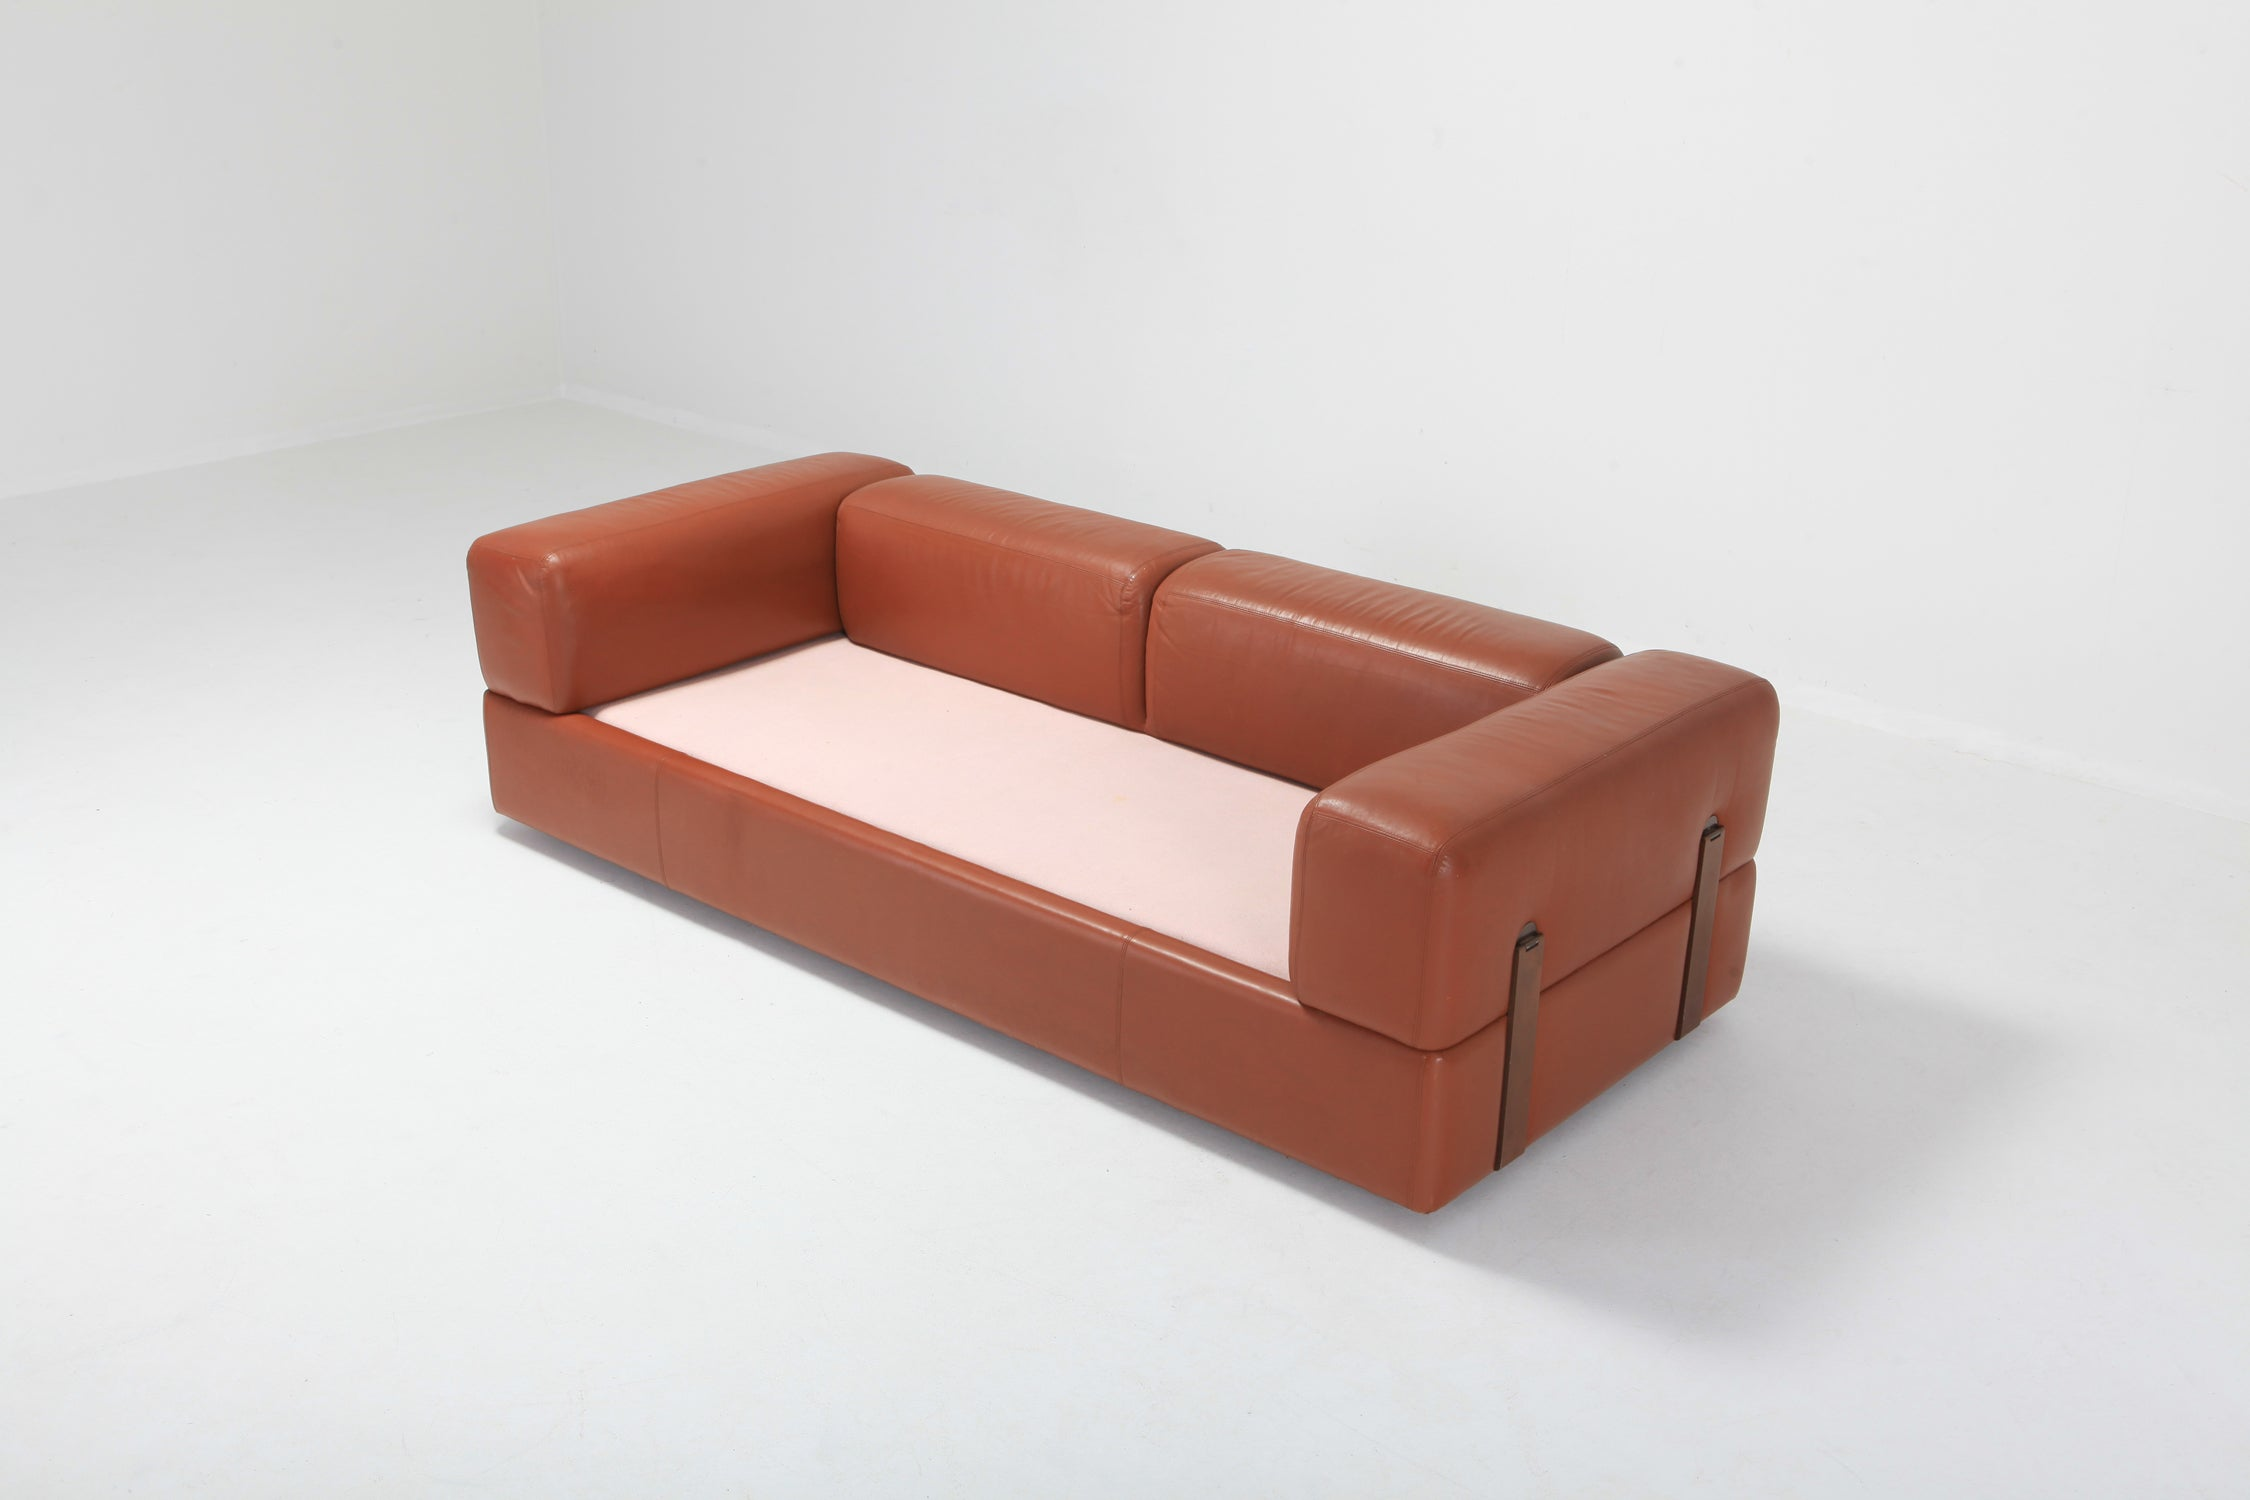 Sofa Beds Amsterdam Minimalist Cognac Leather Sofa By Tito Agnoli For Cinova